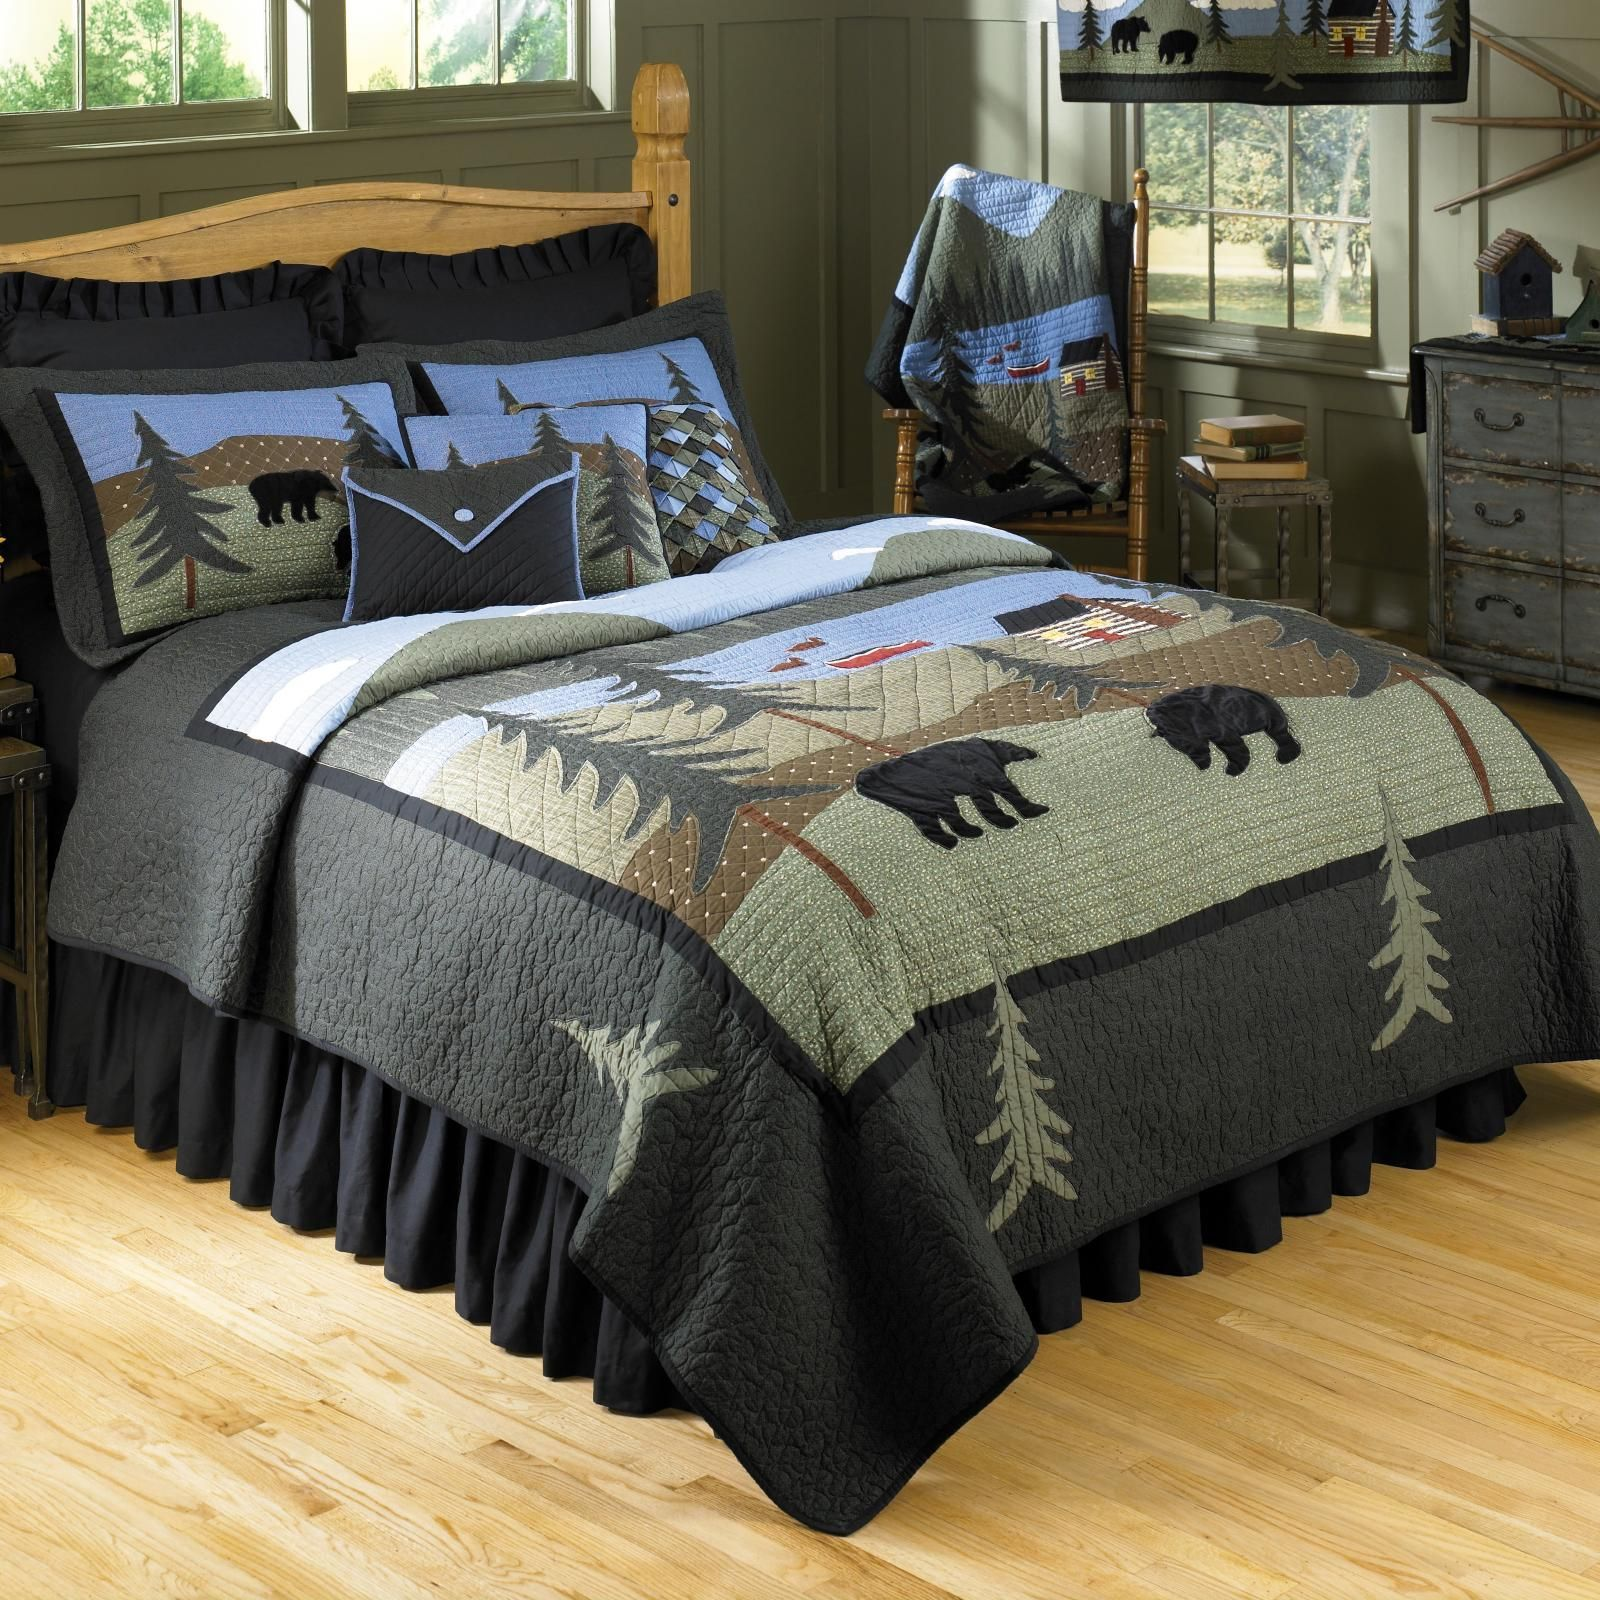 rustic retreat themed cabins budget lodge friendly mountain cabin sets style moose comforters bedding quilt log hunting set